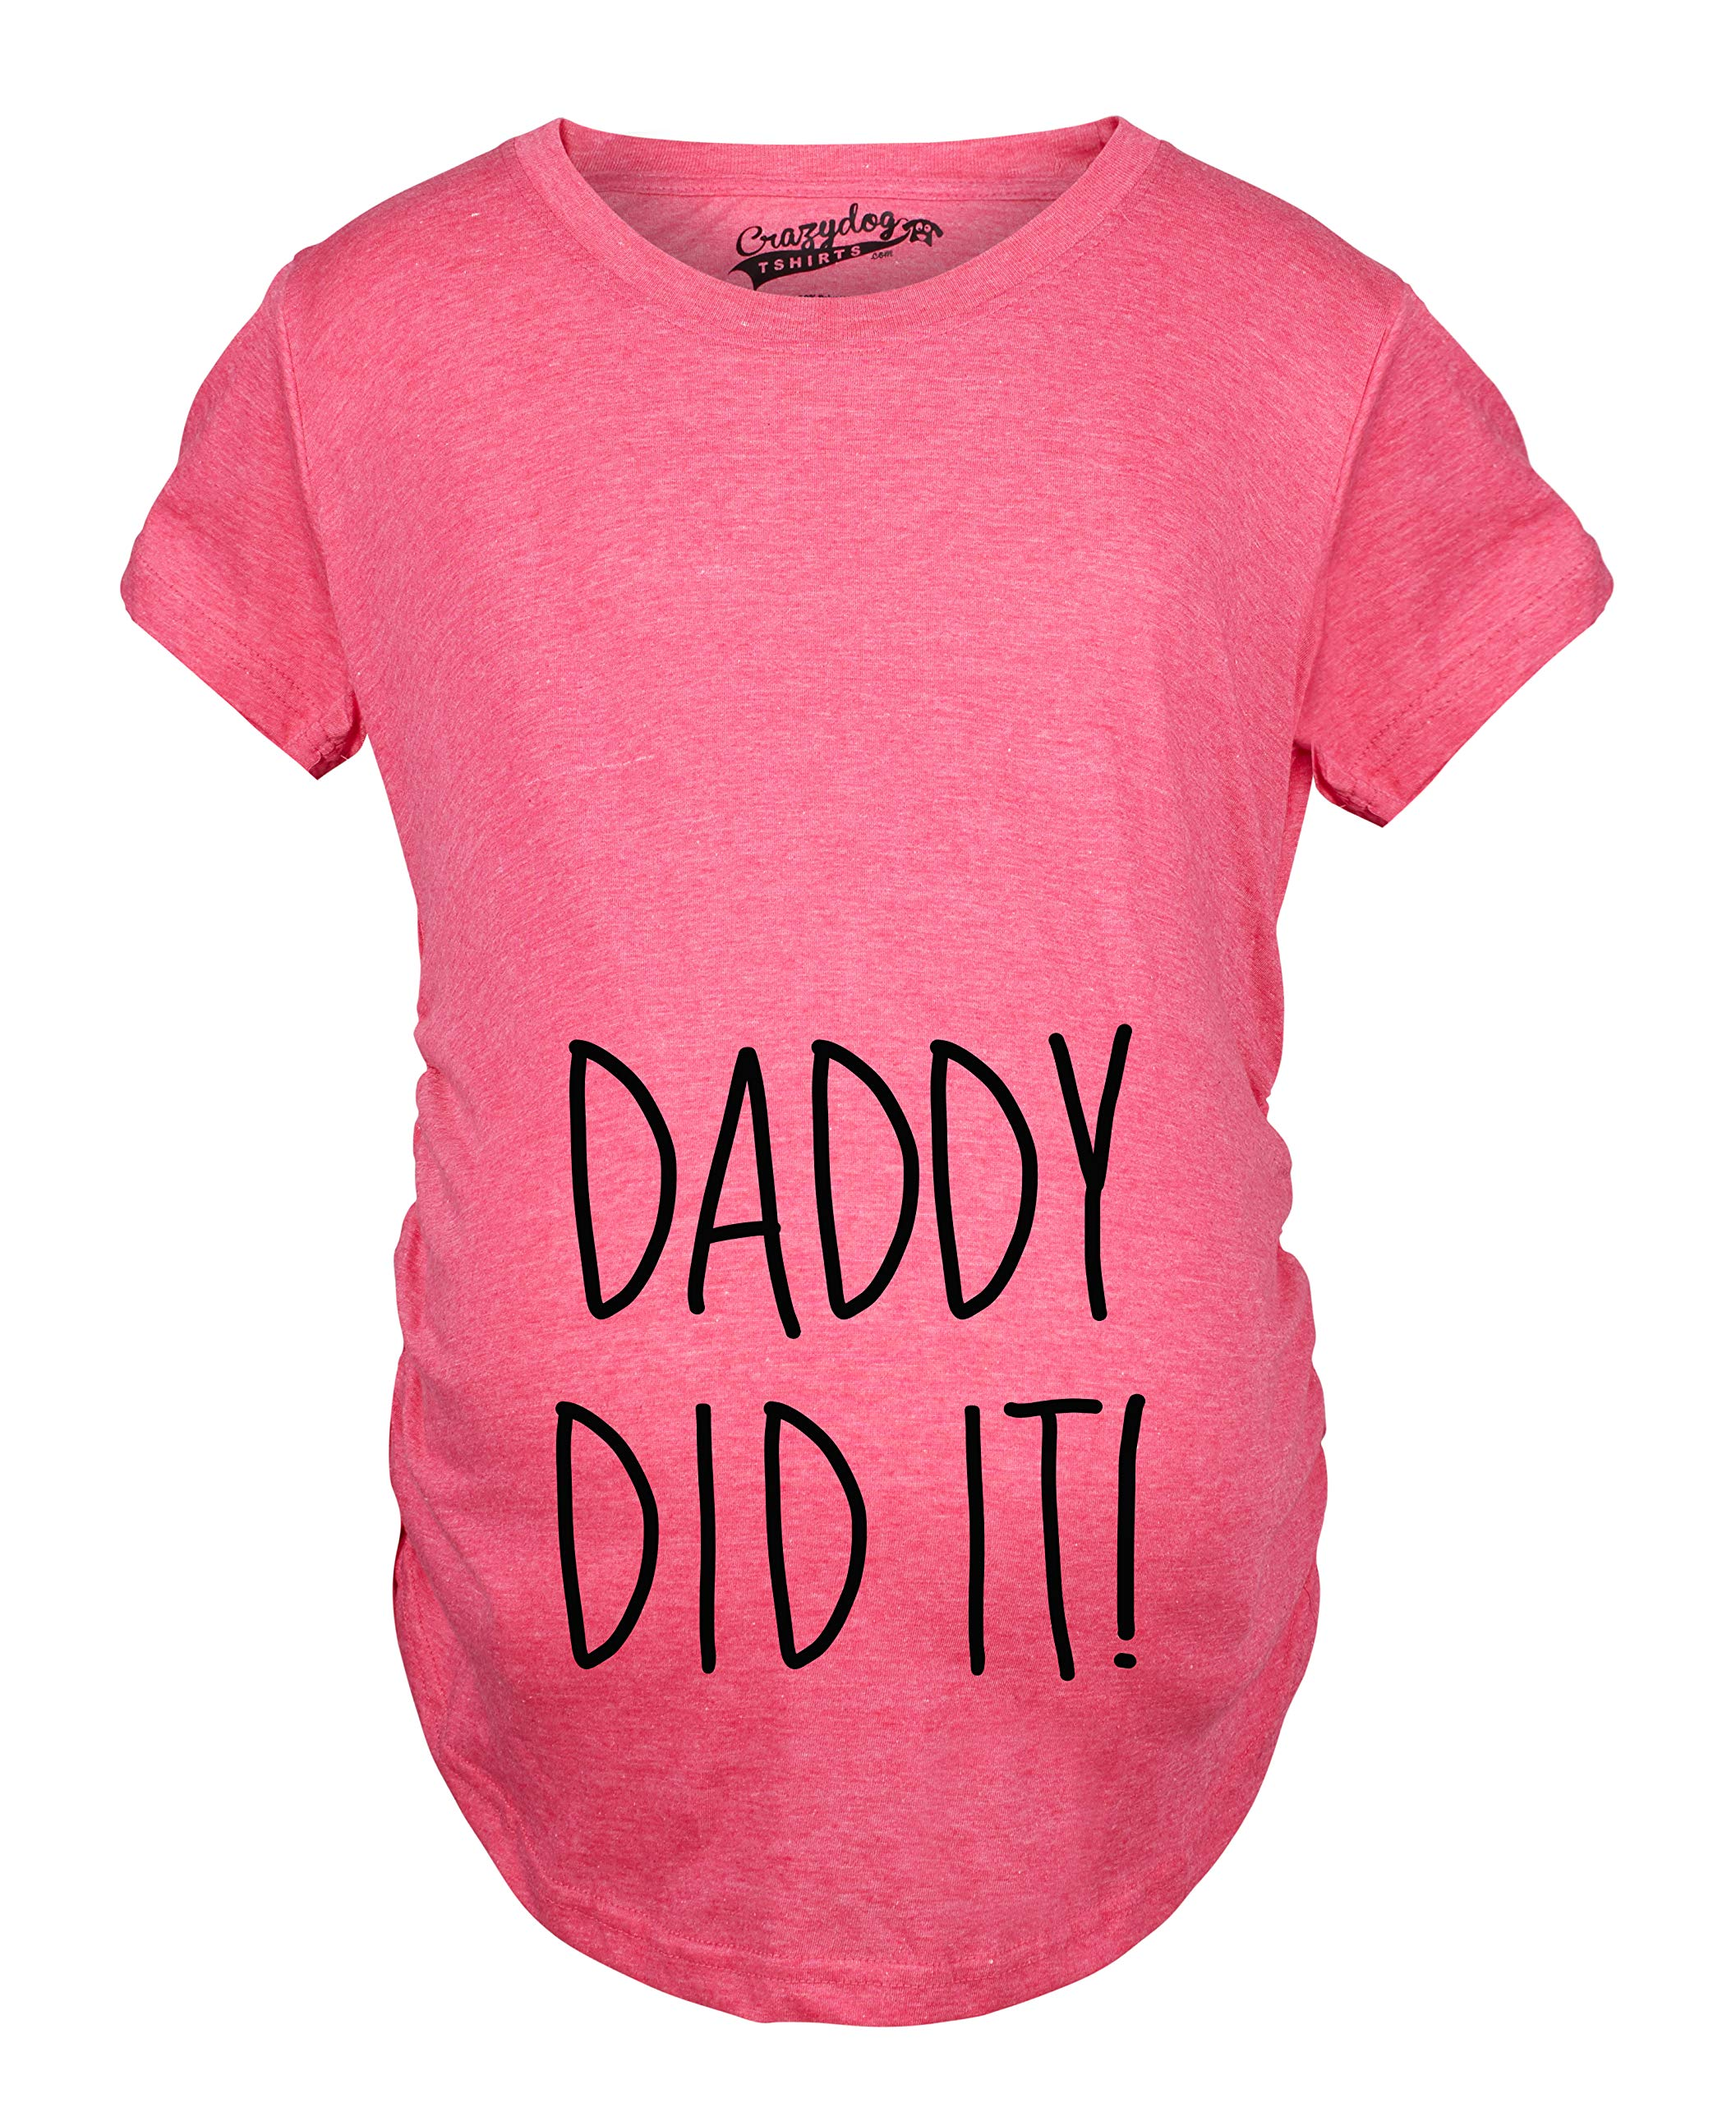 Maternity Daddy Did It T Shirt Funny Pregnancy Announcement Gender Reveal Tee